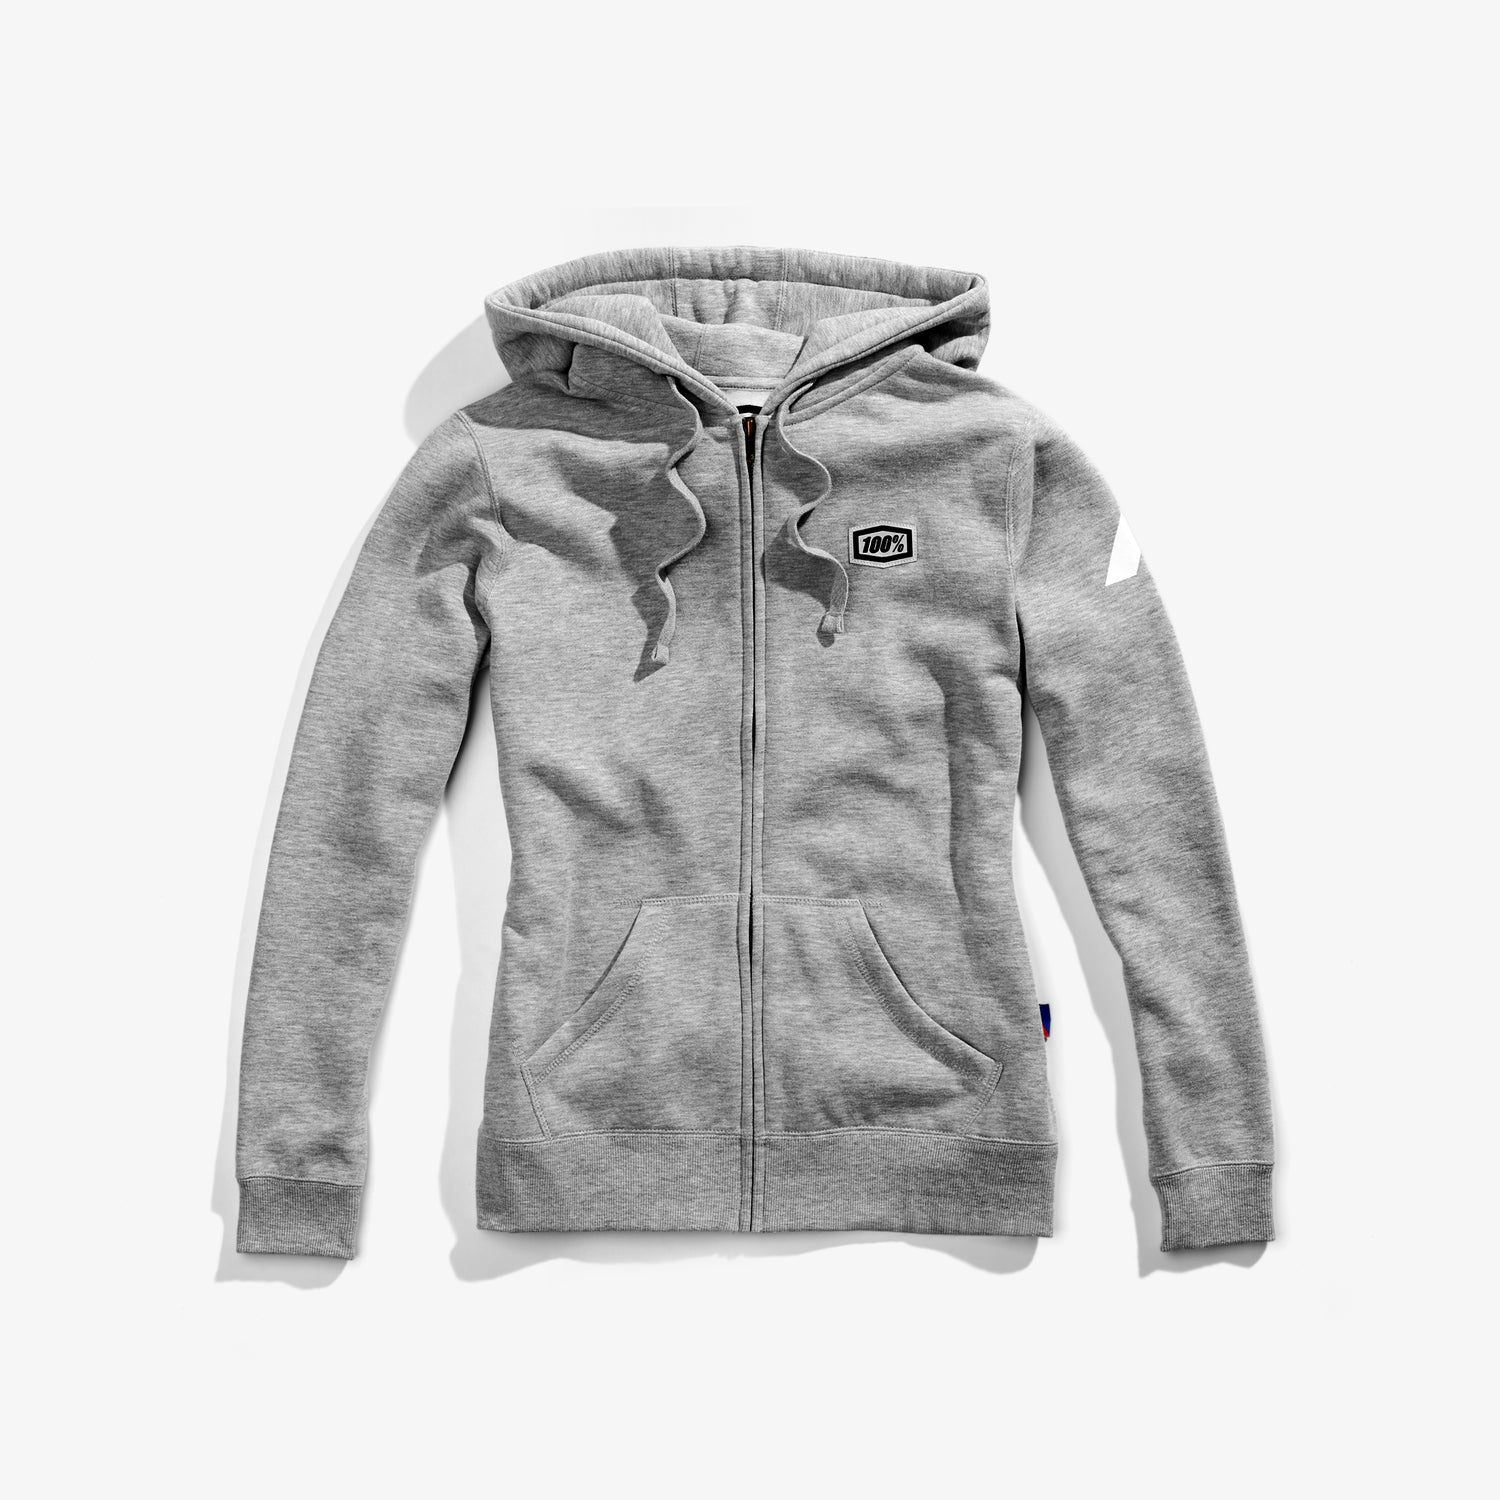 COSMIC Women's Hooded Zip Sweatshirt Grey Heather